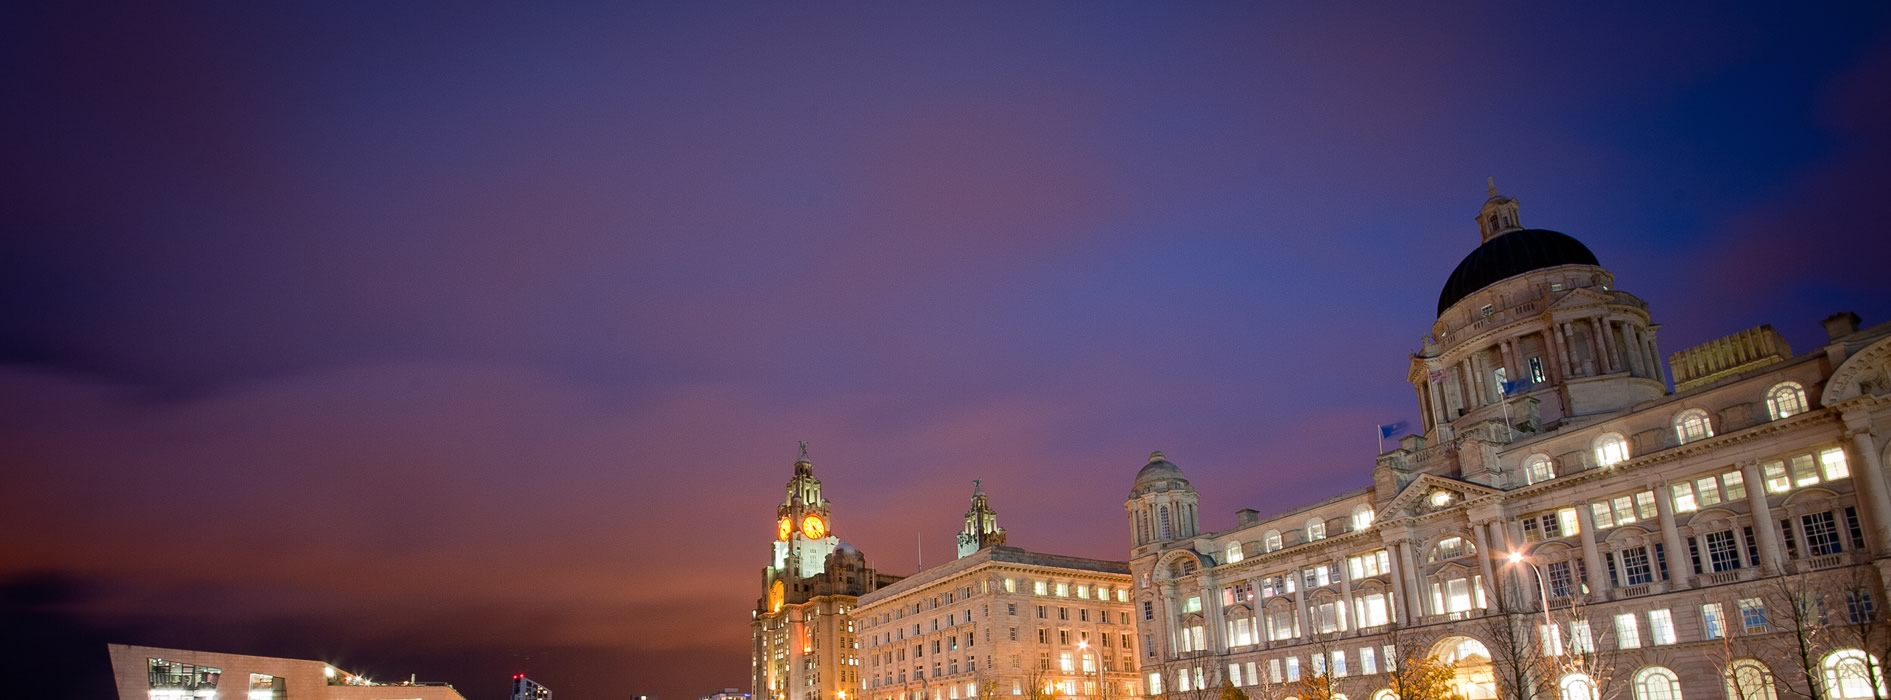 slider-liverpool-night